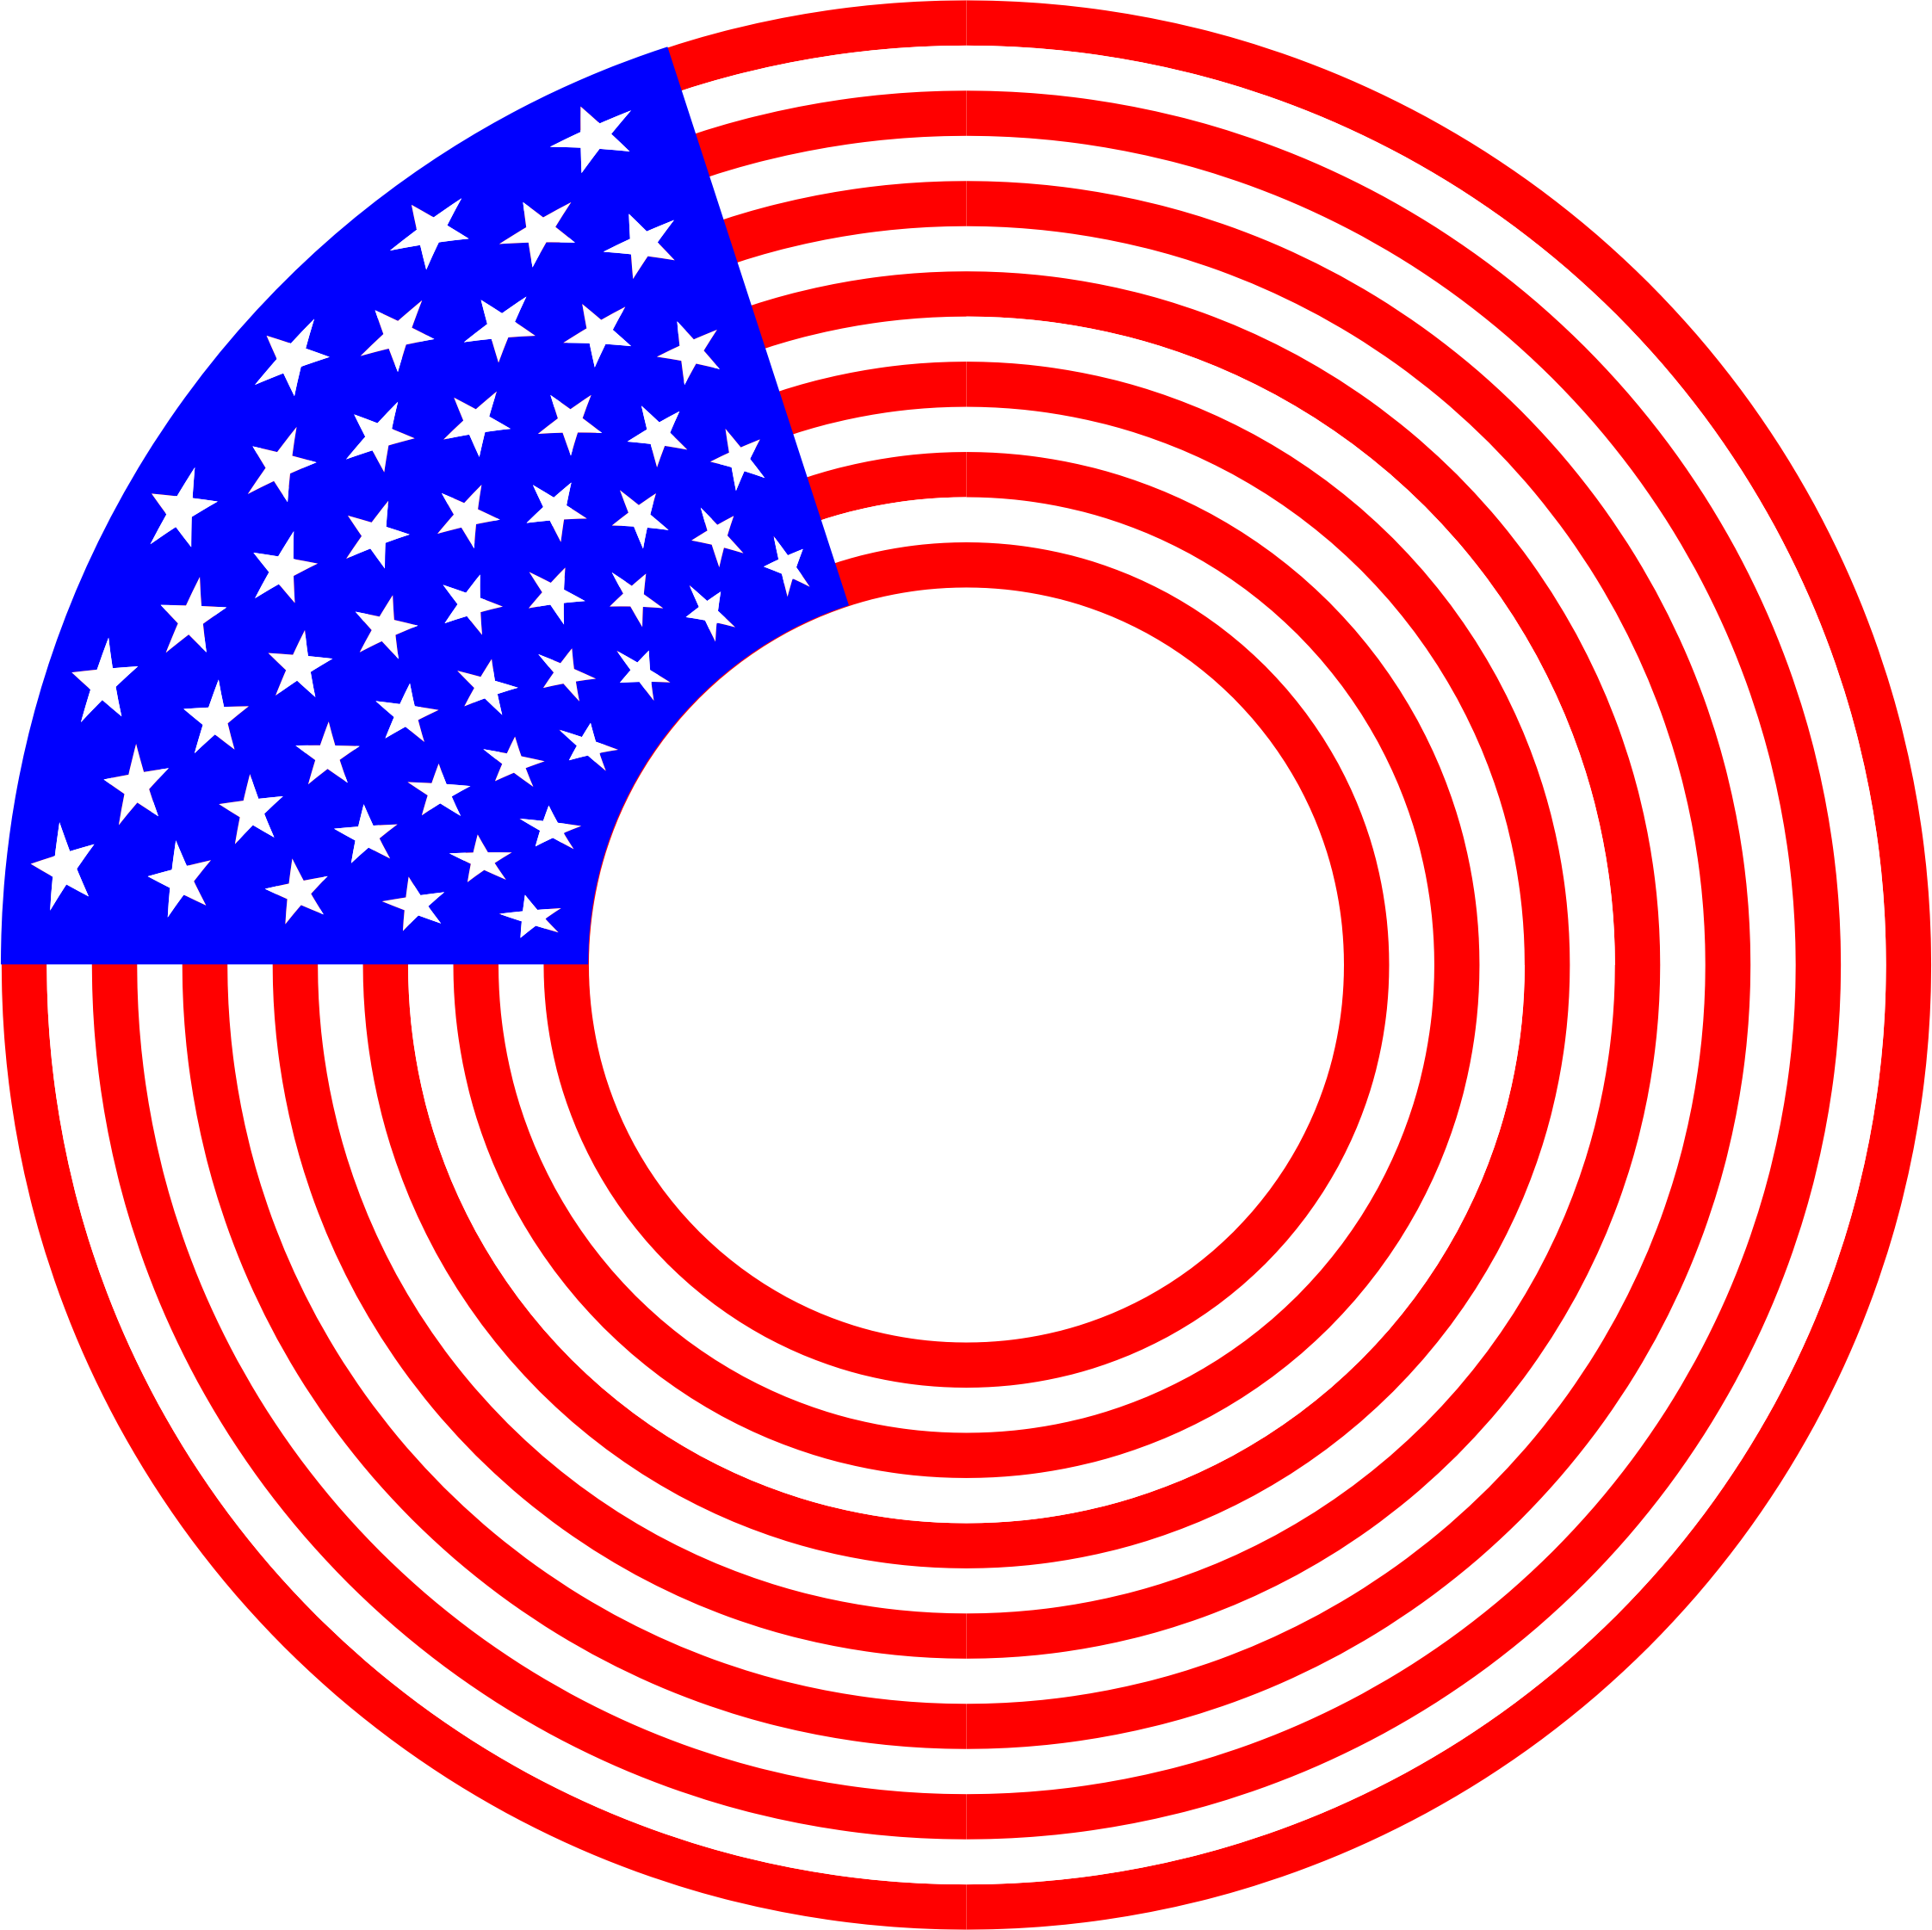 Circle of stars png. And stripes icons free